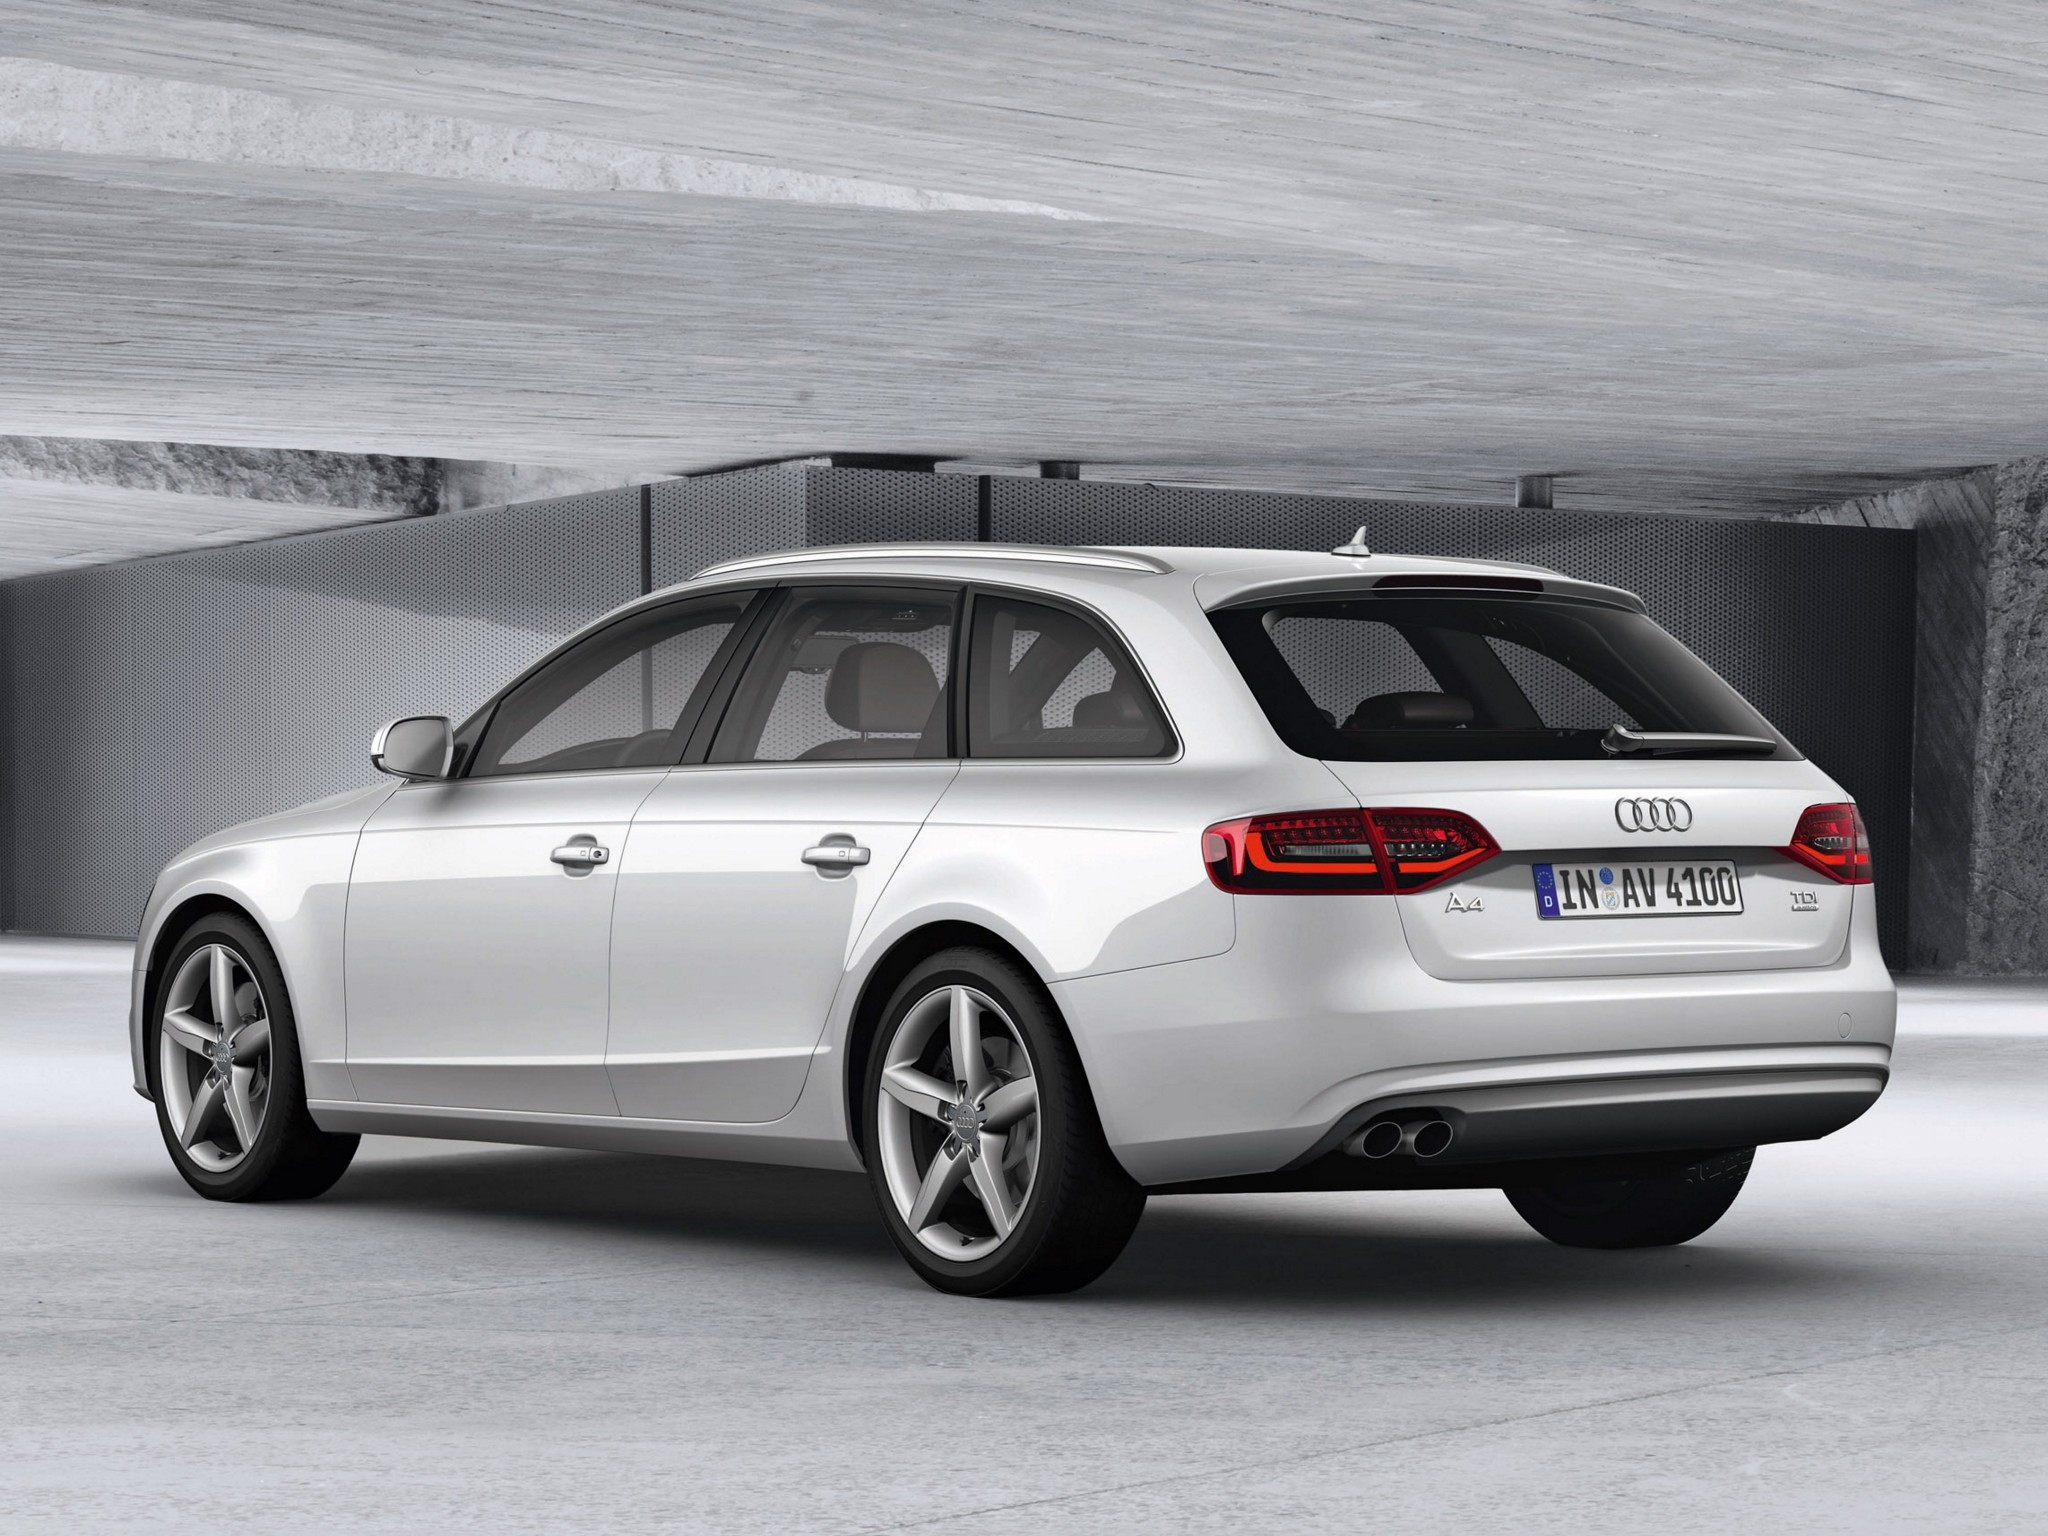 audi a4 avant specs 2012 2013 2014 2015 2016 autoevolution. Black Bedroom Furniture Sets. Home Design Ideas